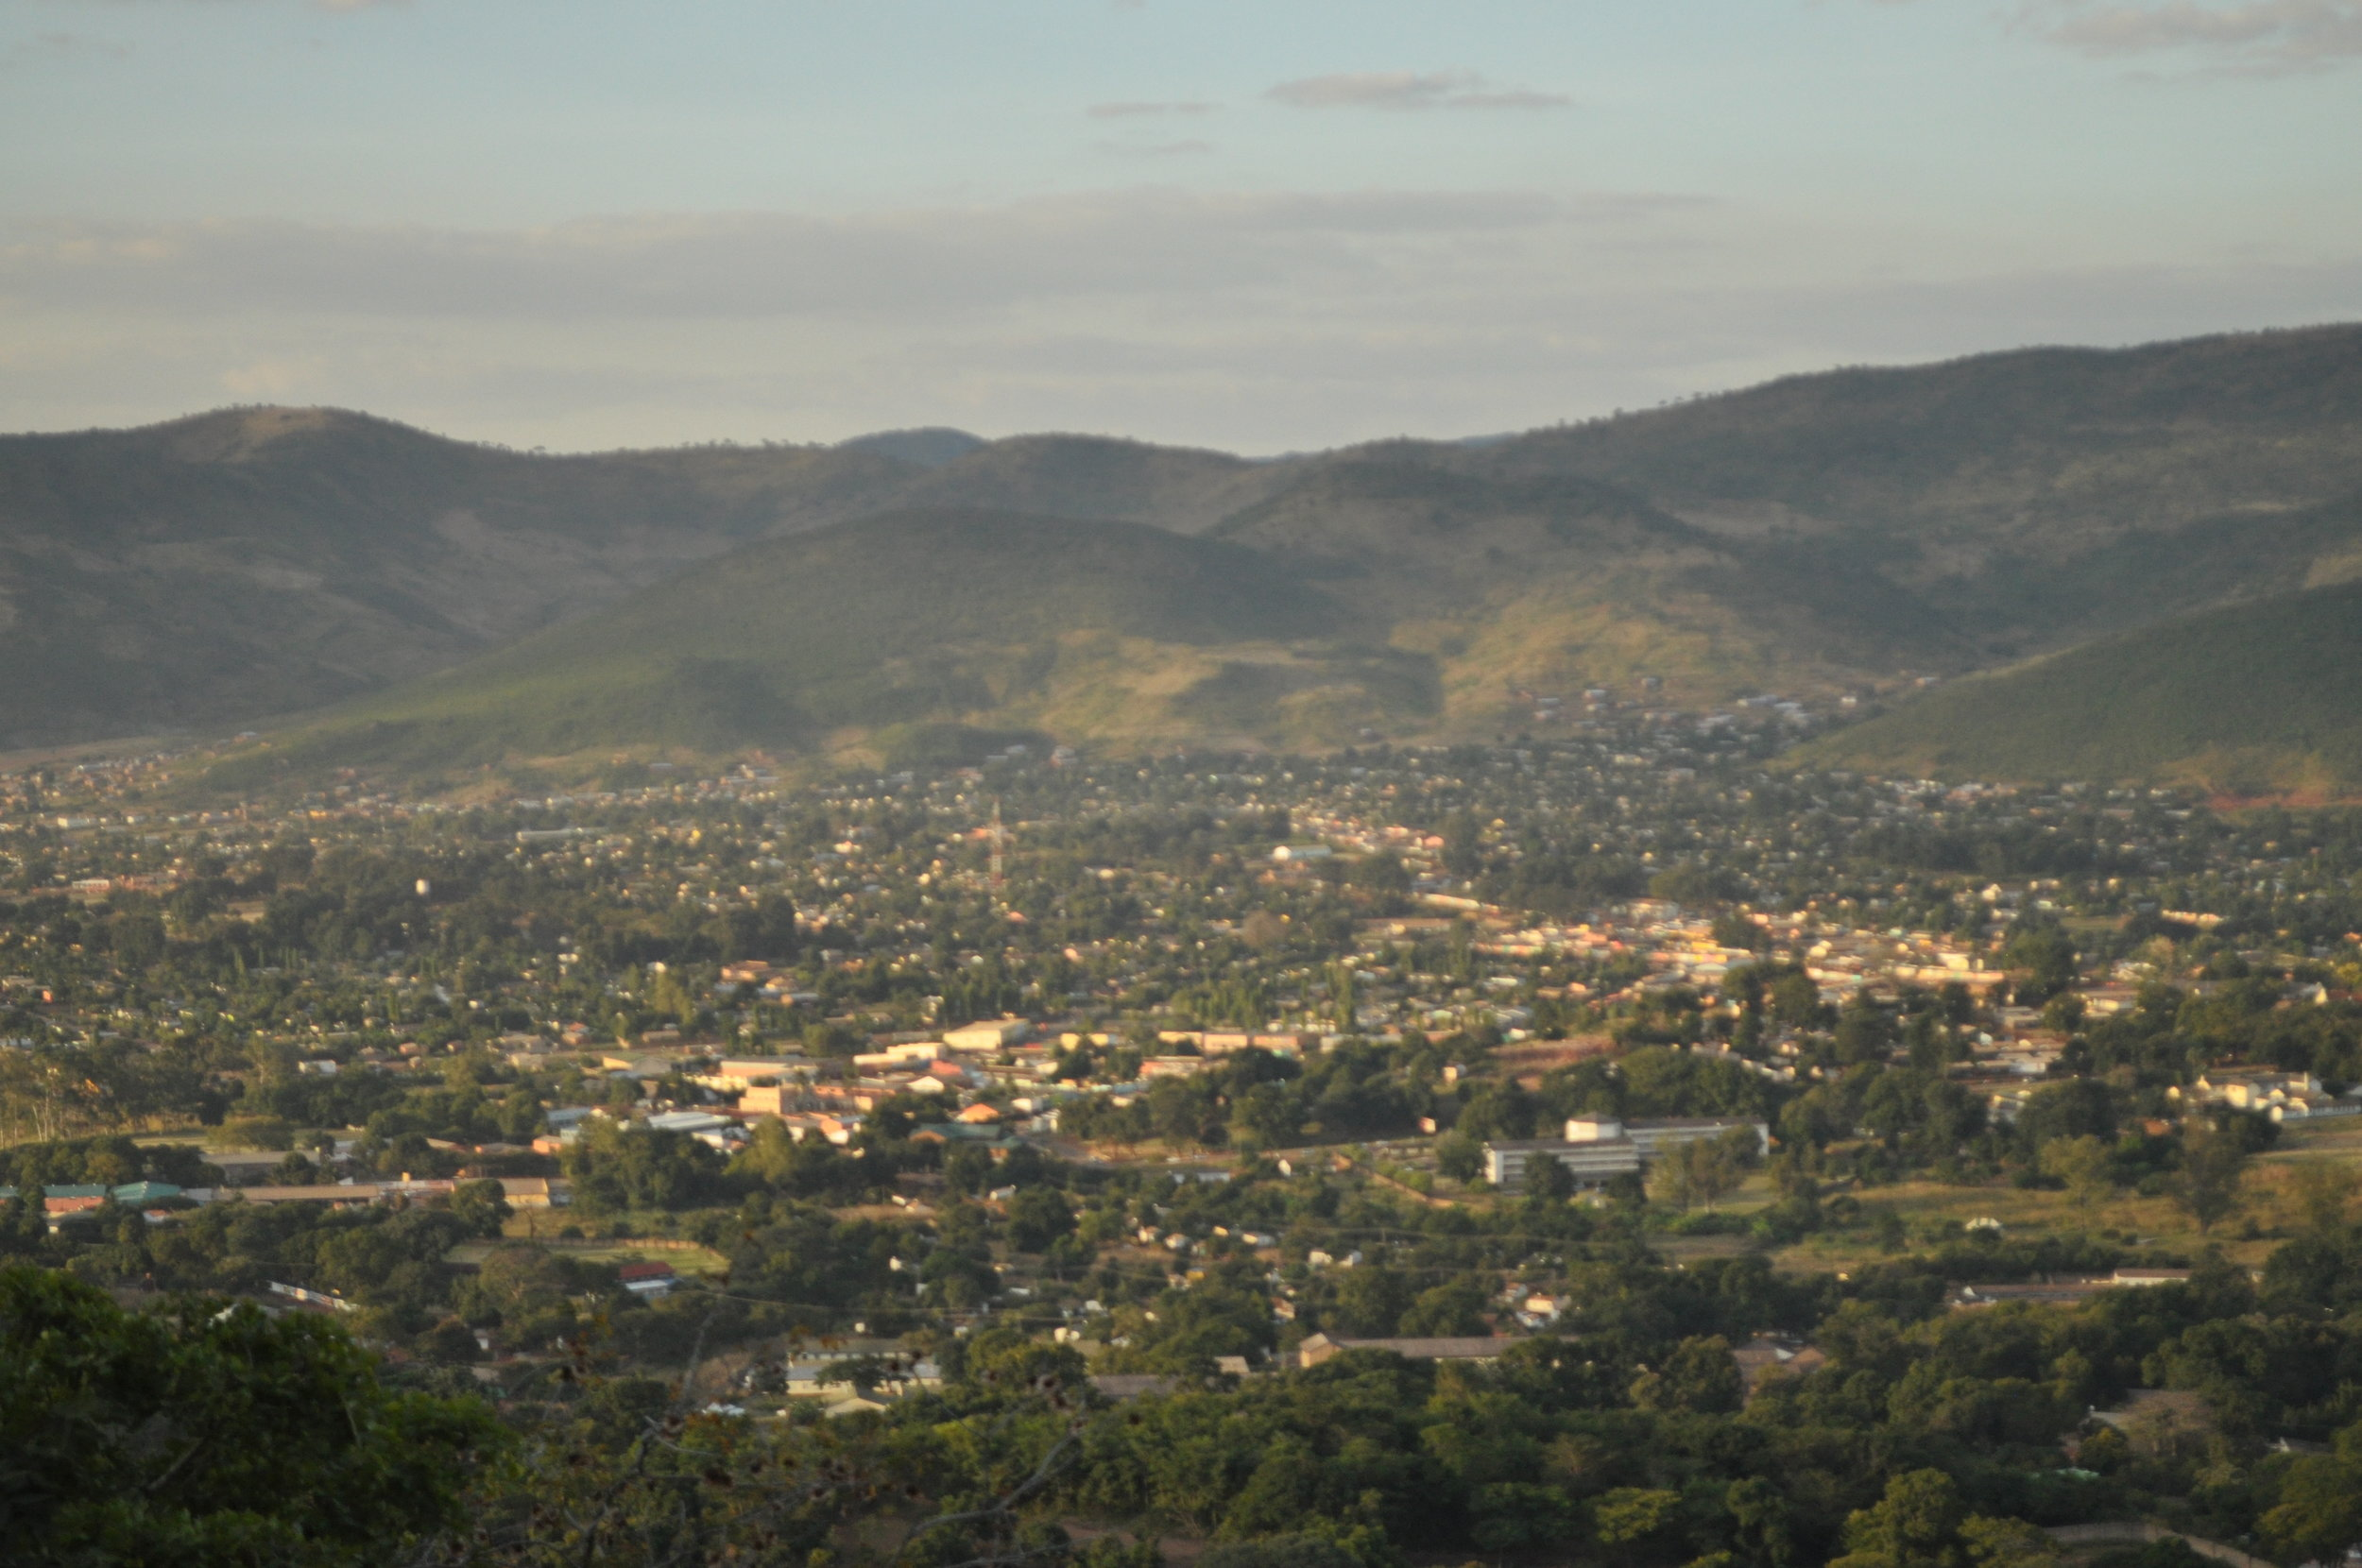 Chipata from the hill side.